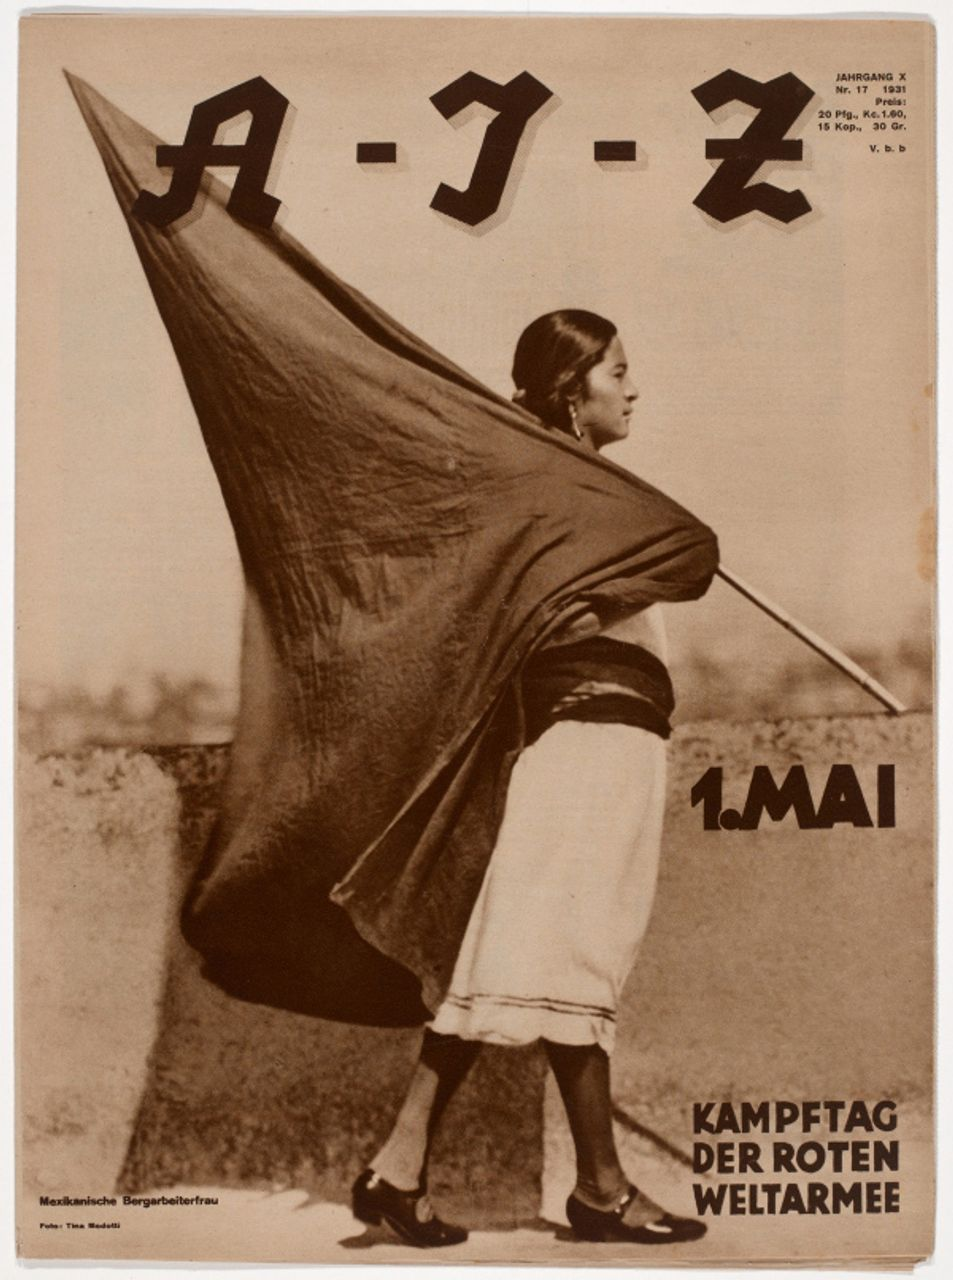 Tina Modotti (Italian, 1896-1942). Woman with Flag (1 de Mayo, Muher con Bandera), A-I-Z, Iss. 17 (1931). Rotogravure, approx. 15 1/8 x 11 1/8 in. (38.2 x 28 cm). The Museum of Fine Arts Houston, Museum purchase funded by Max and Isabel Smith Herzstein